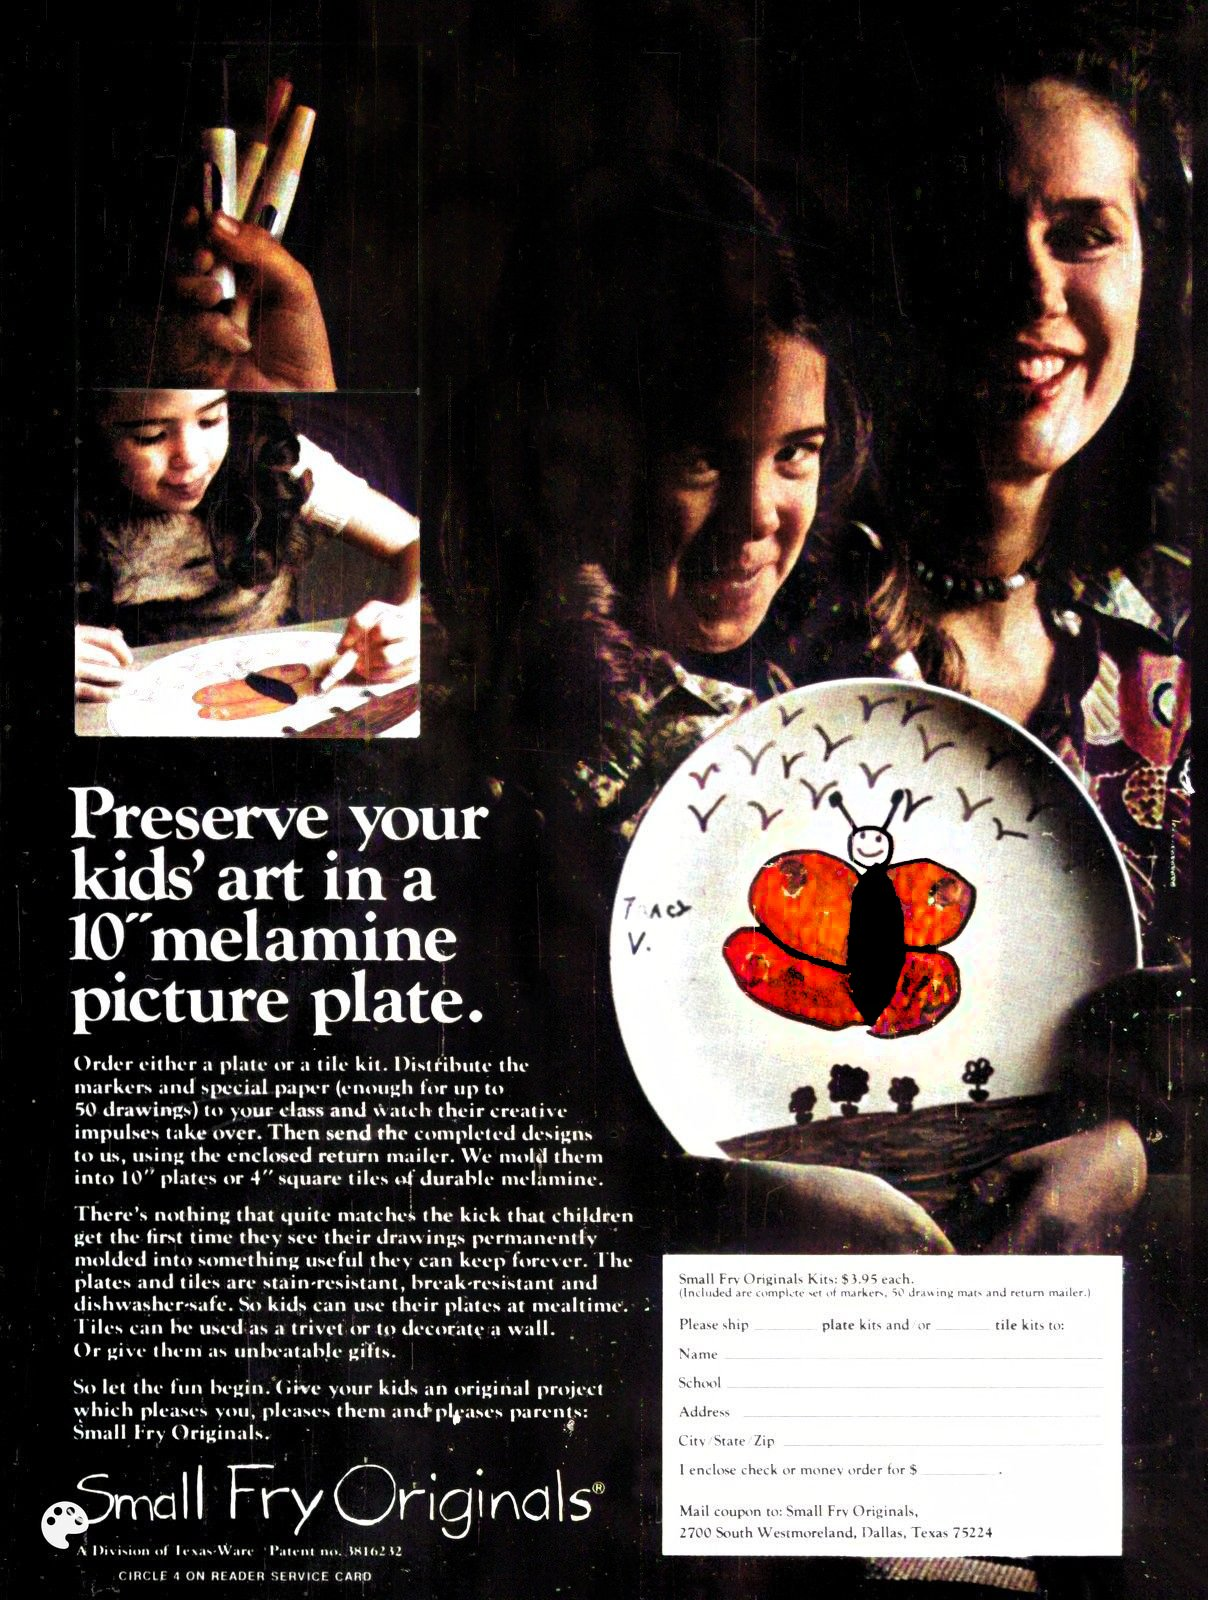 Preserve your kids' art in a 10-inch melamine picture plate (1976)